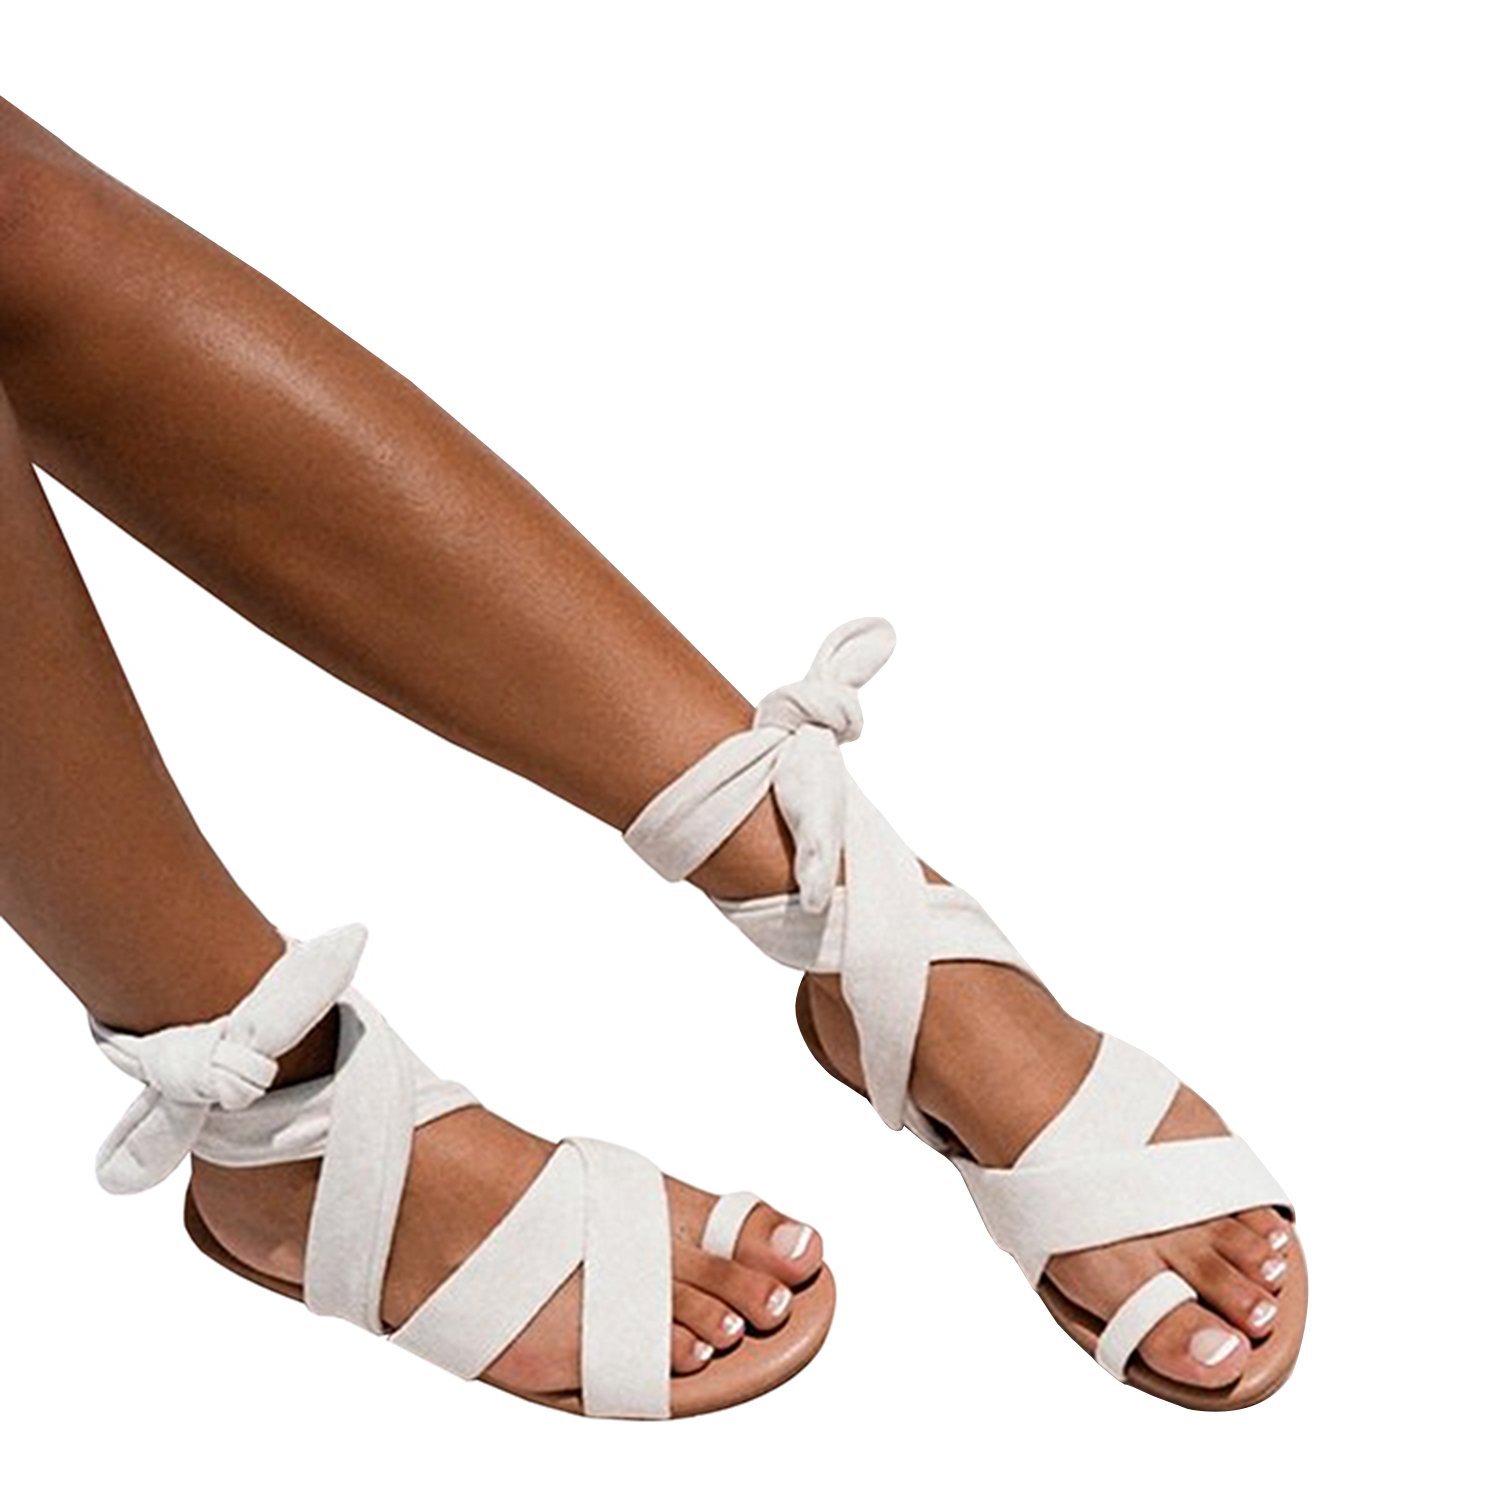 4536358e672 Syktkmx Womens Lace Up Strappy Toe Ring Cute Summer Beach Flat Dress Gladiator  Sandals - Casual Women s Shoes